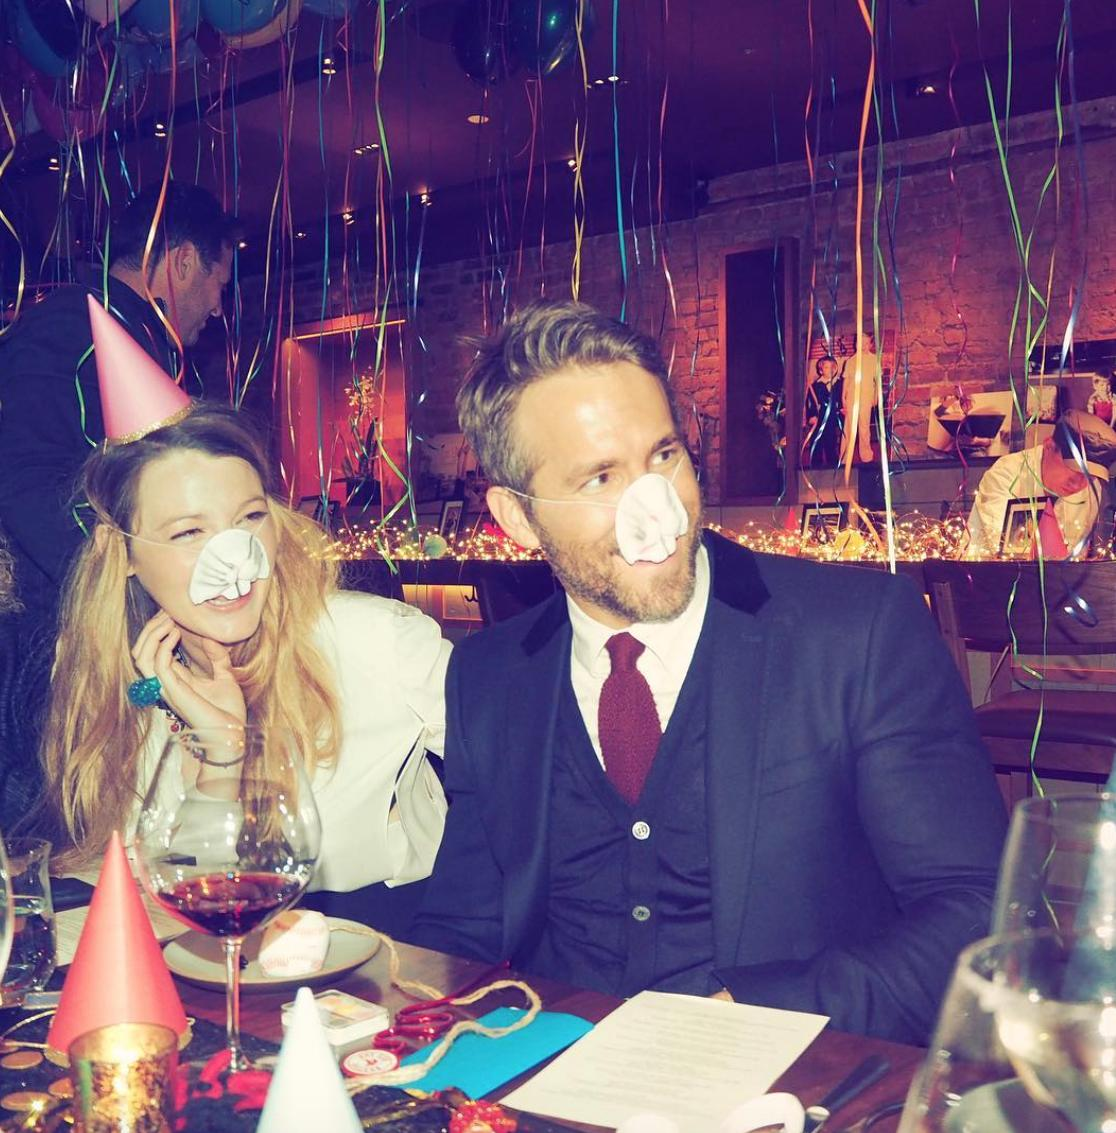 Blake Lively and Ryan Reynolds celebrate his 40th